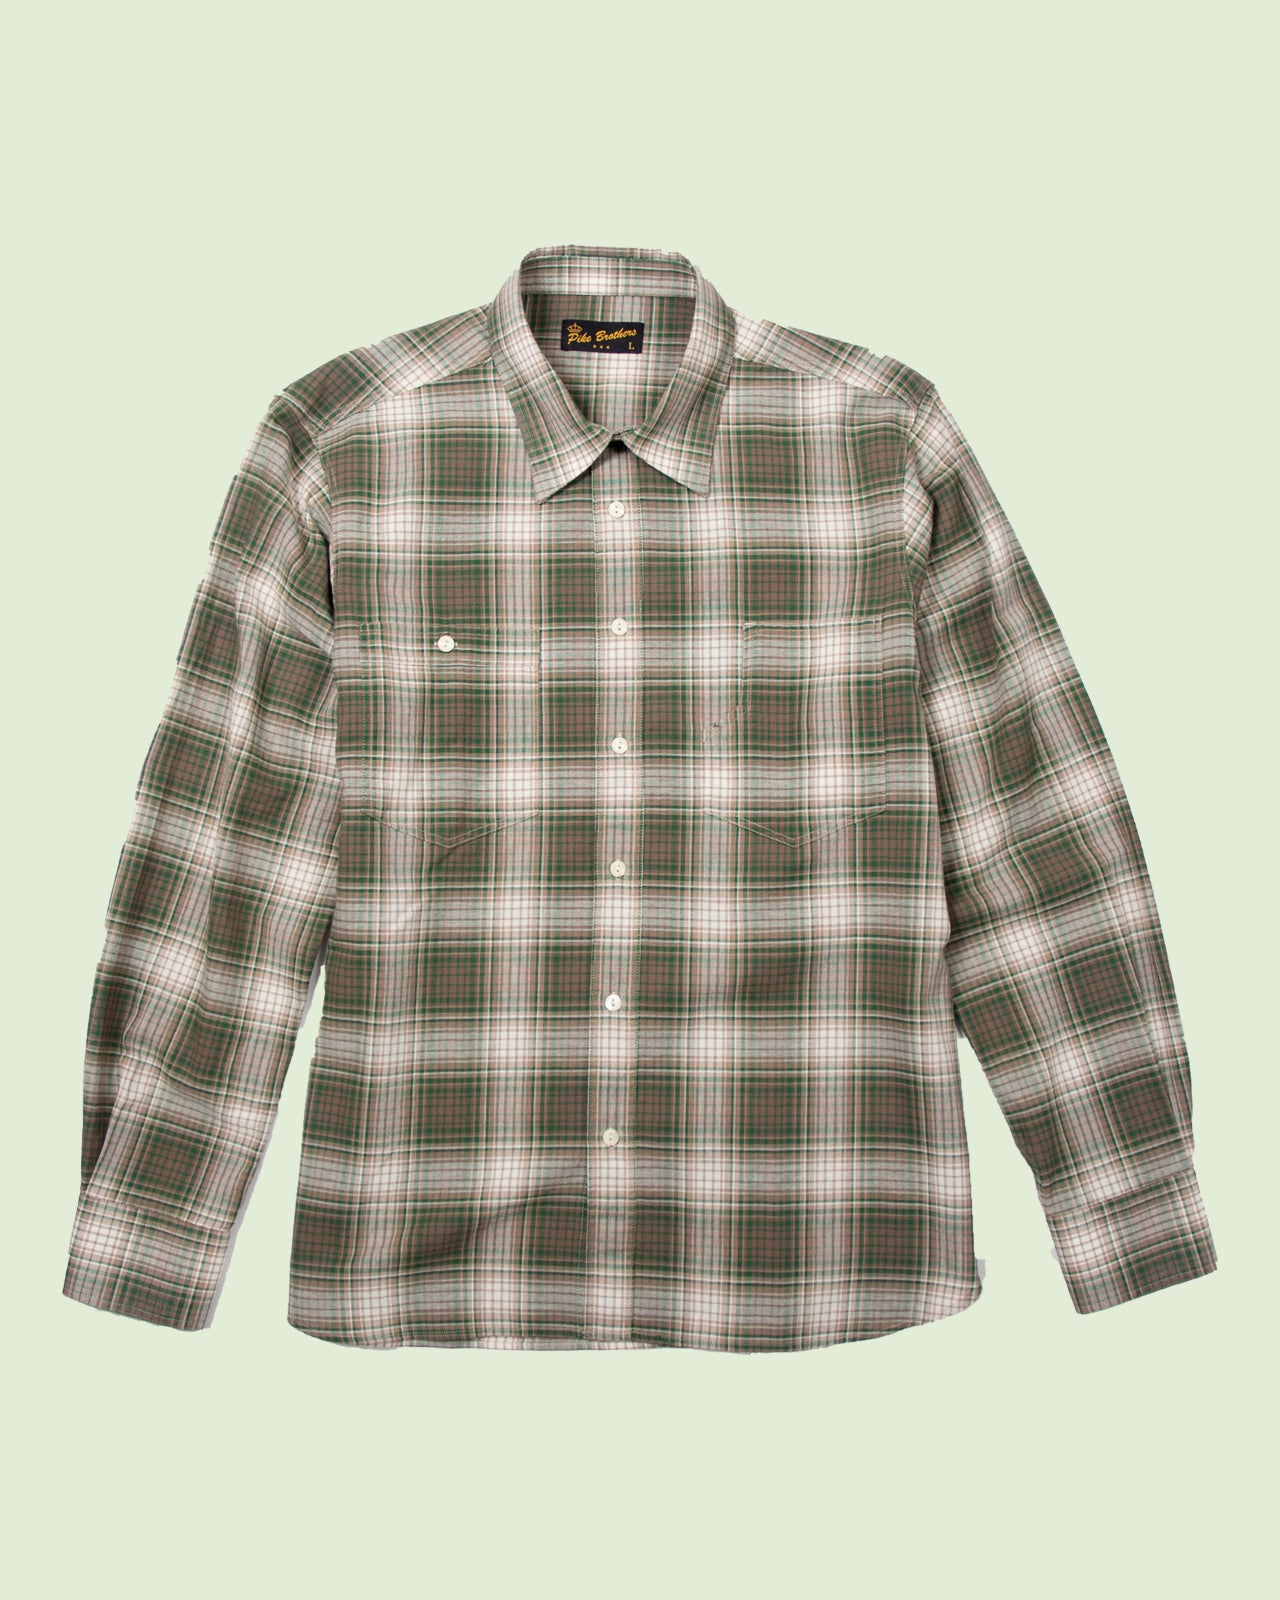 1937 Roamer Shirt Pioneer green check